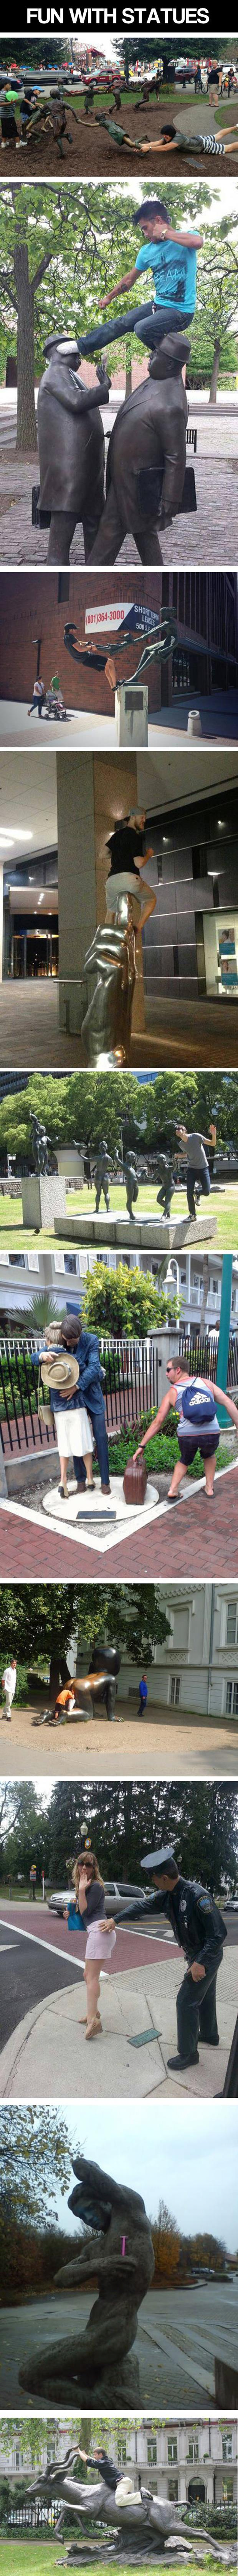 z fun with statues